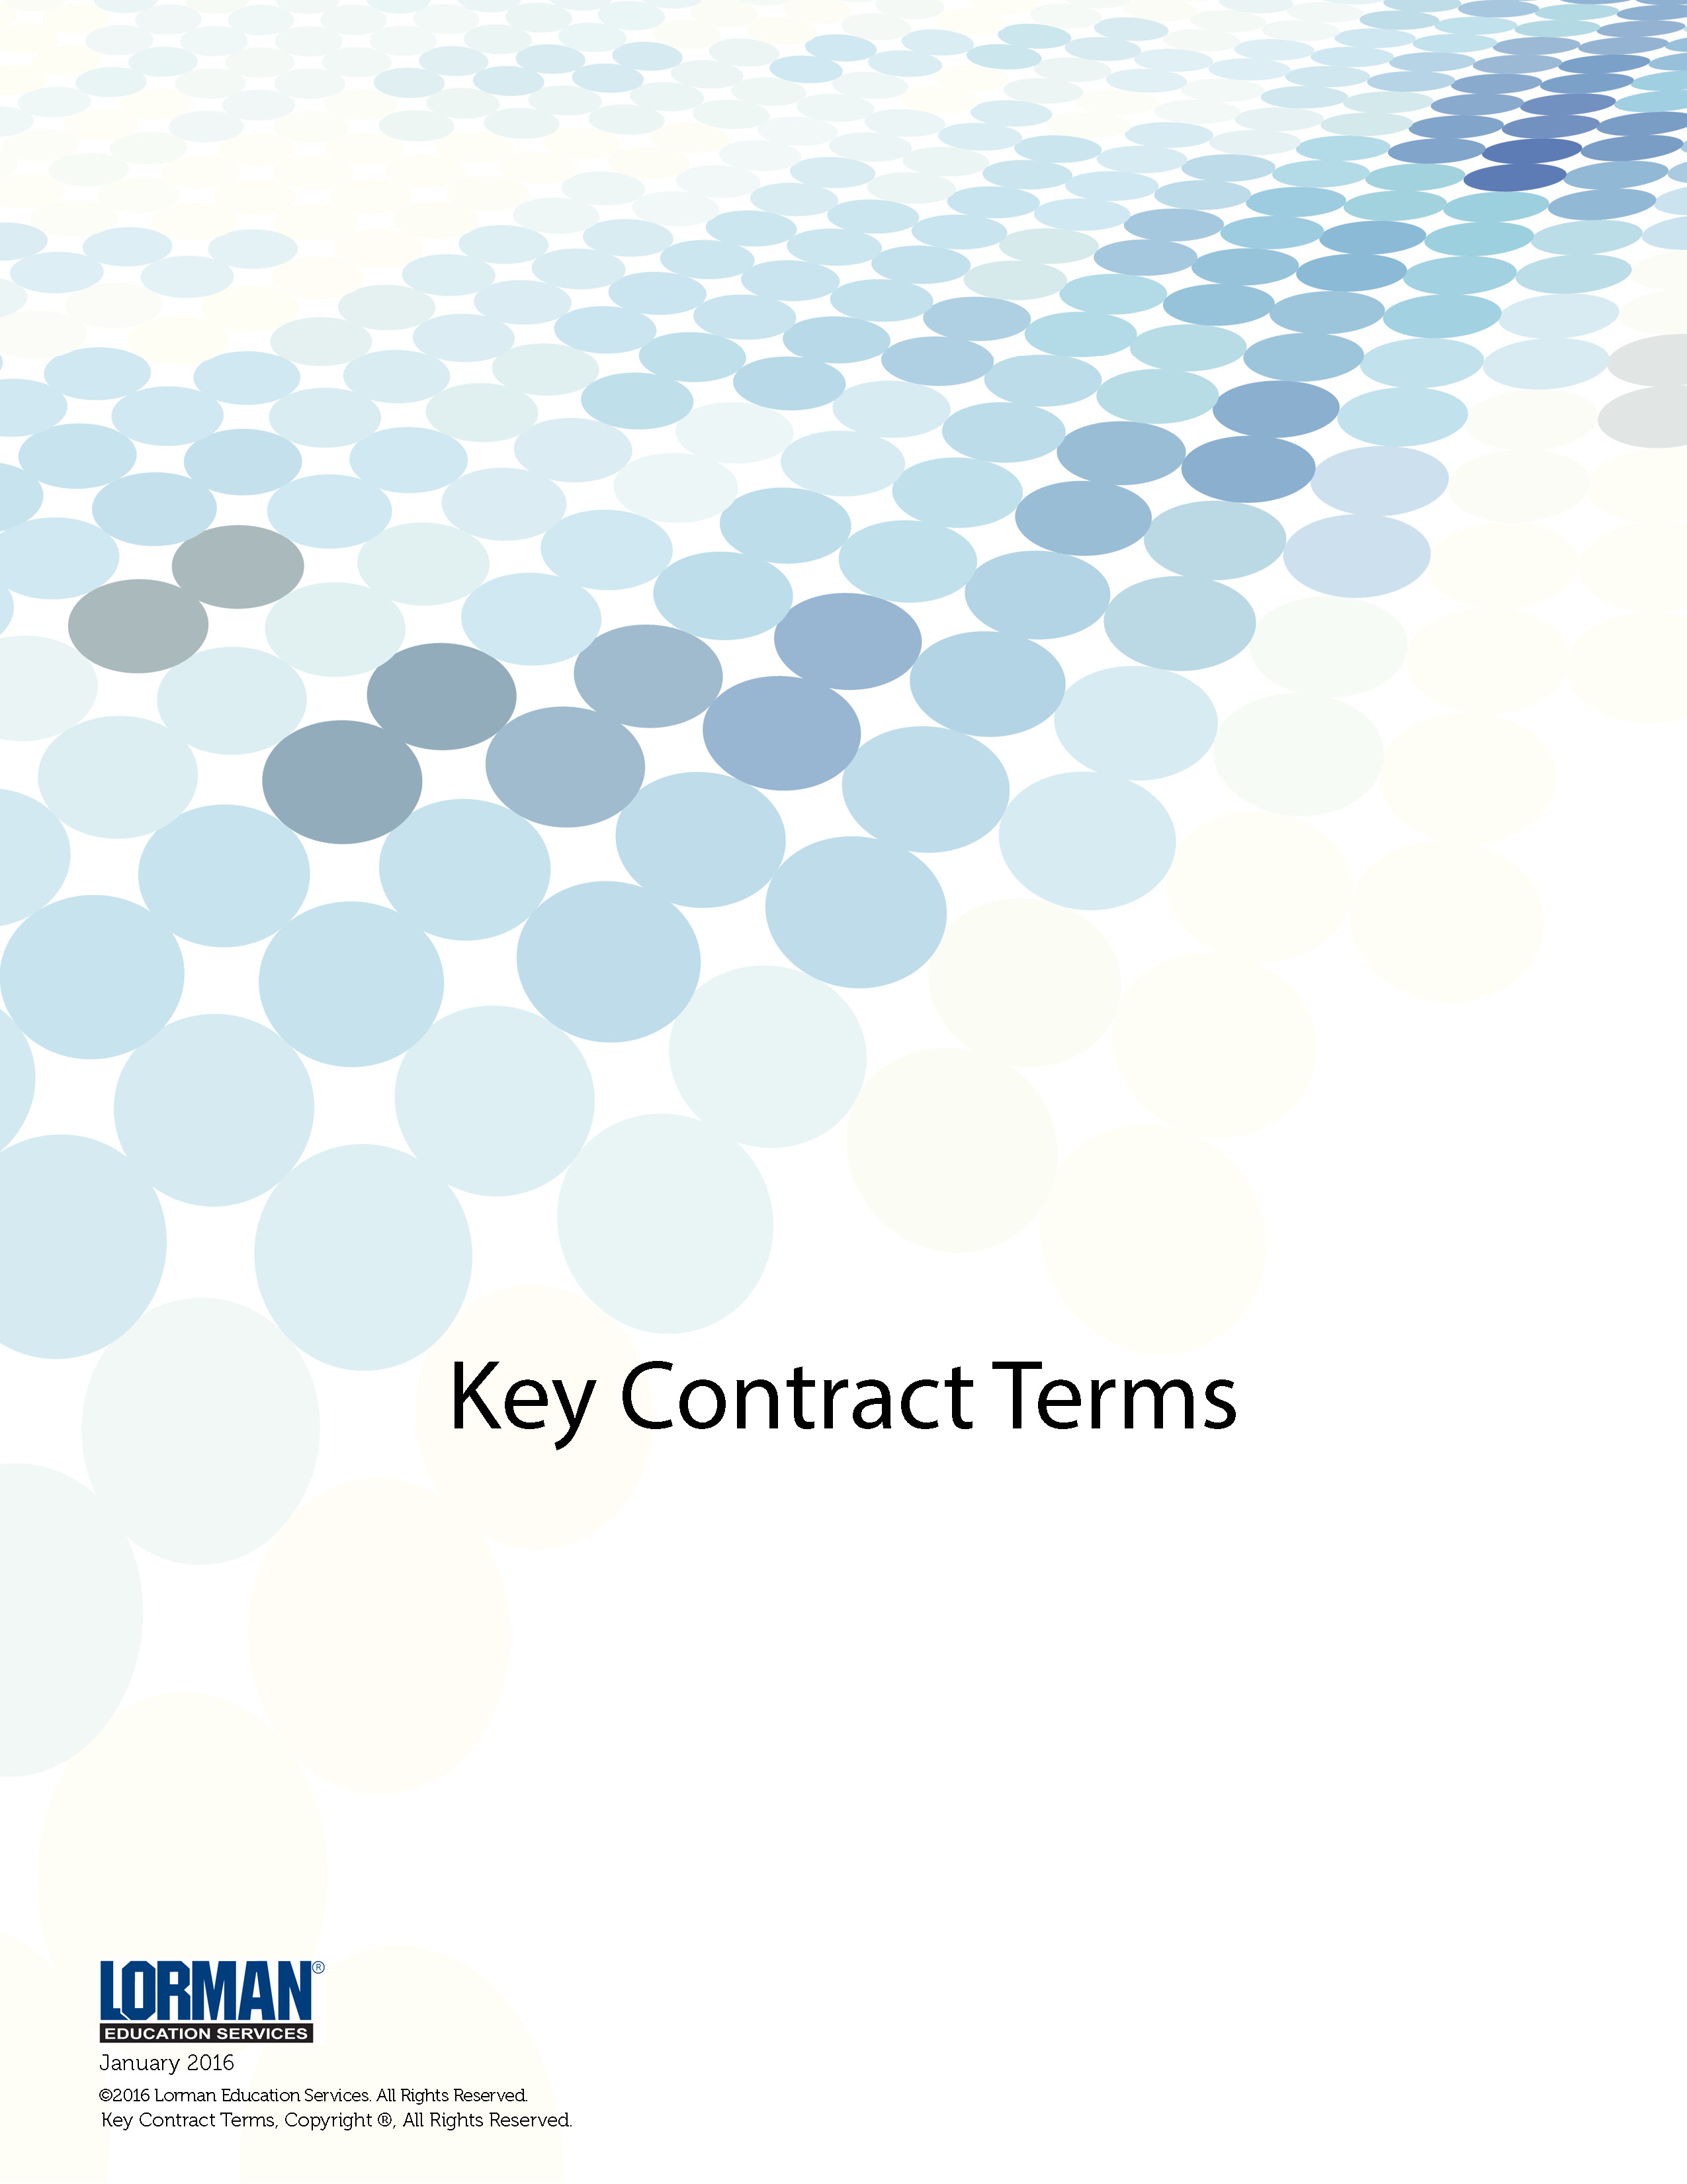 Key Construction Contract Terms